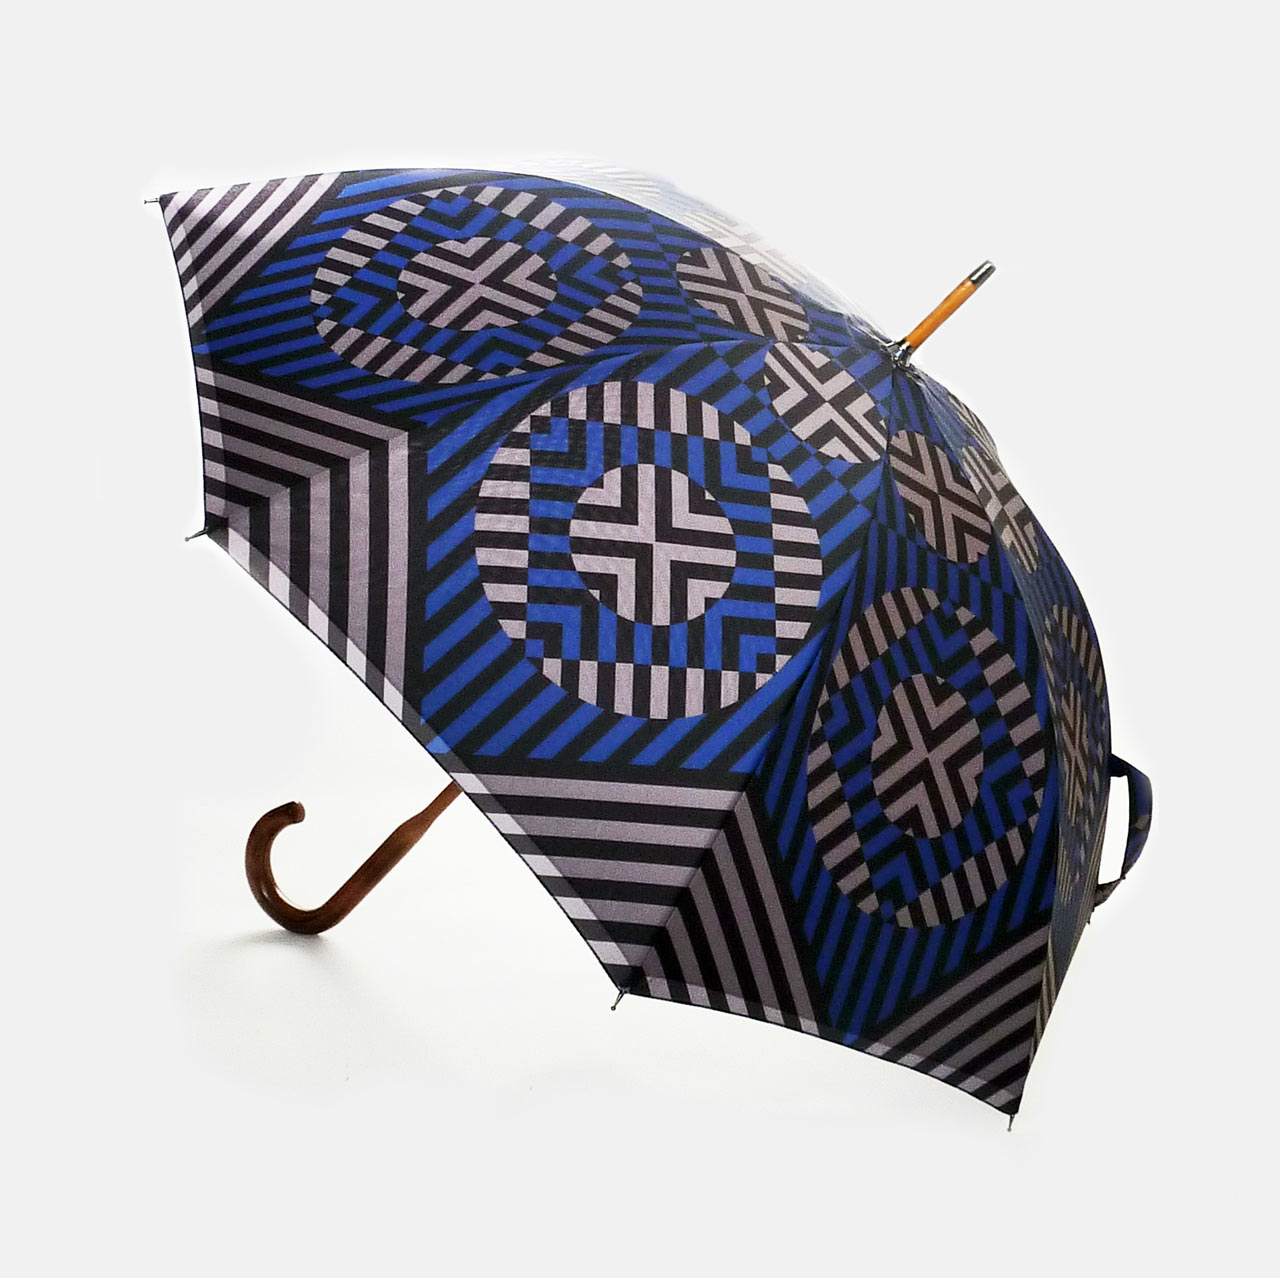 DavidDavid-Walking-Stick-Umbrella-4-U3